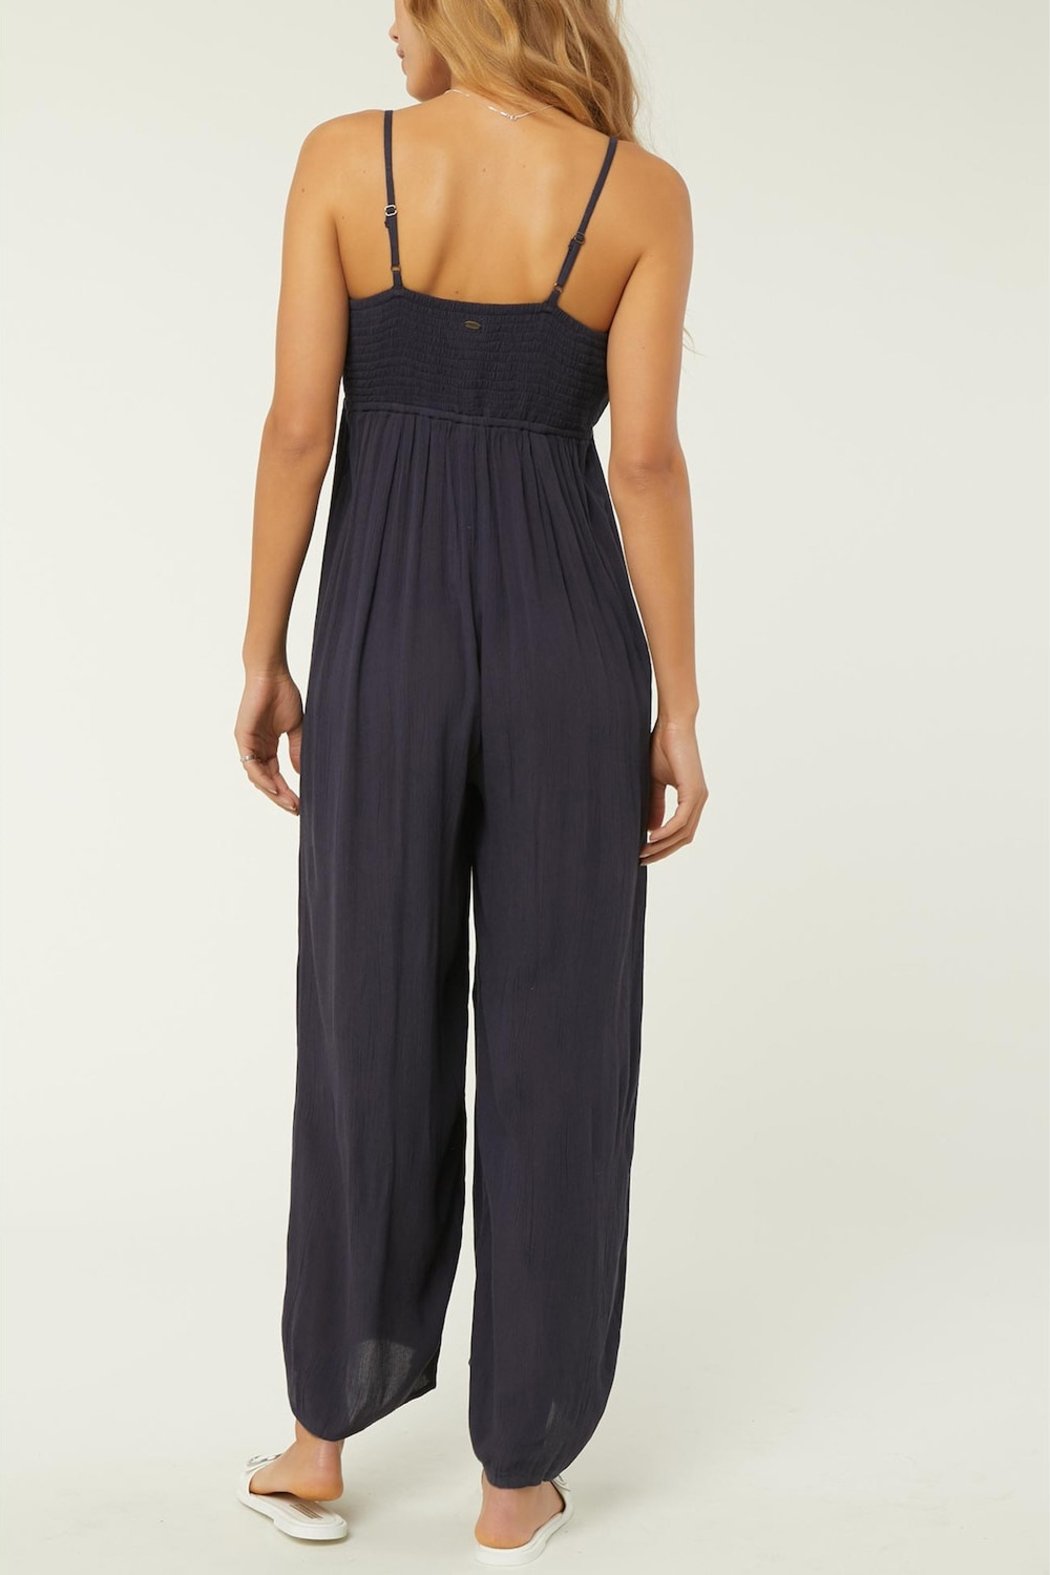 a6a56a83ed5 O Neill Anabella Jumpsuit from Marina by y i clothing boutique ...